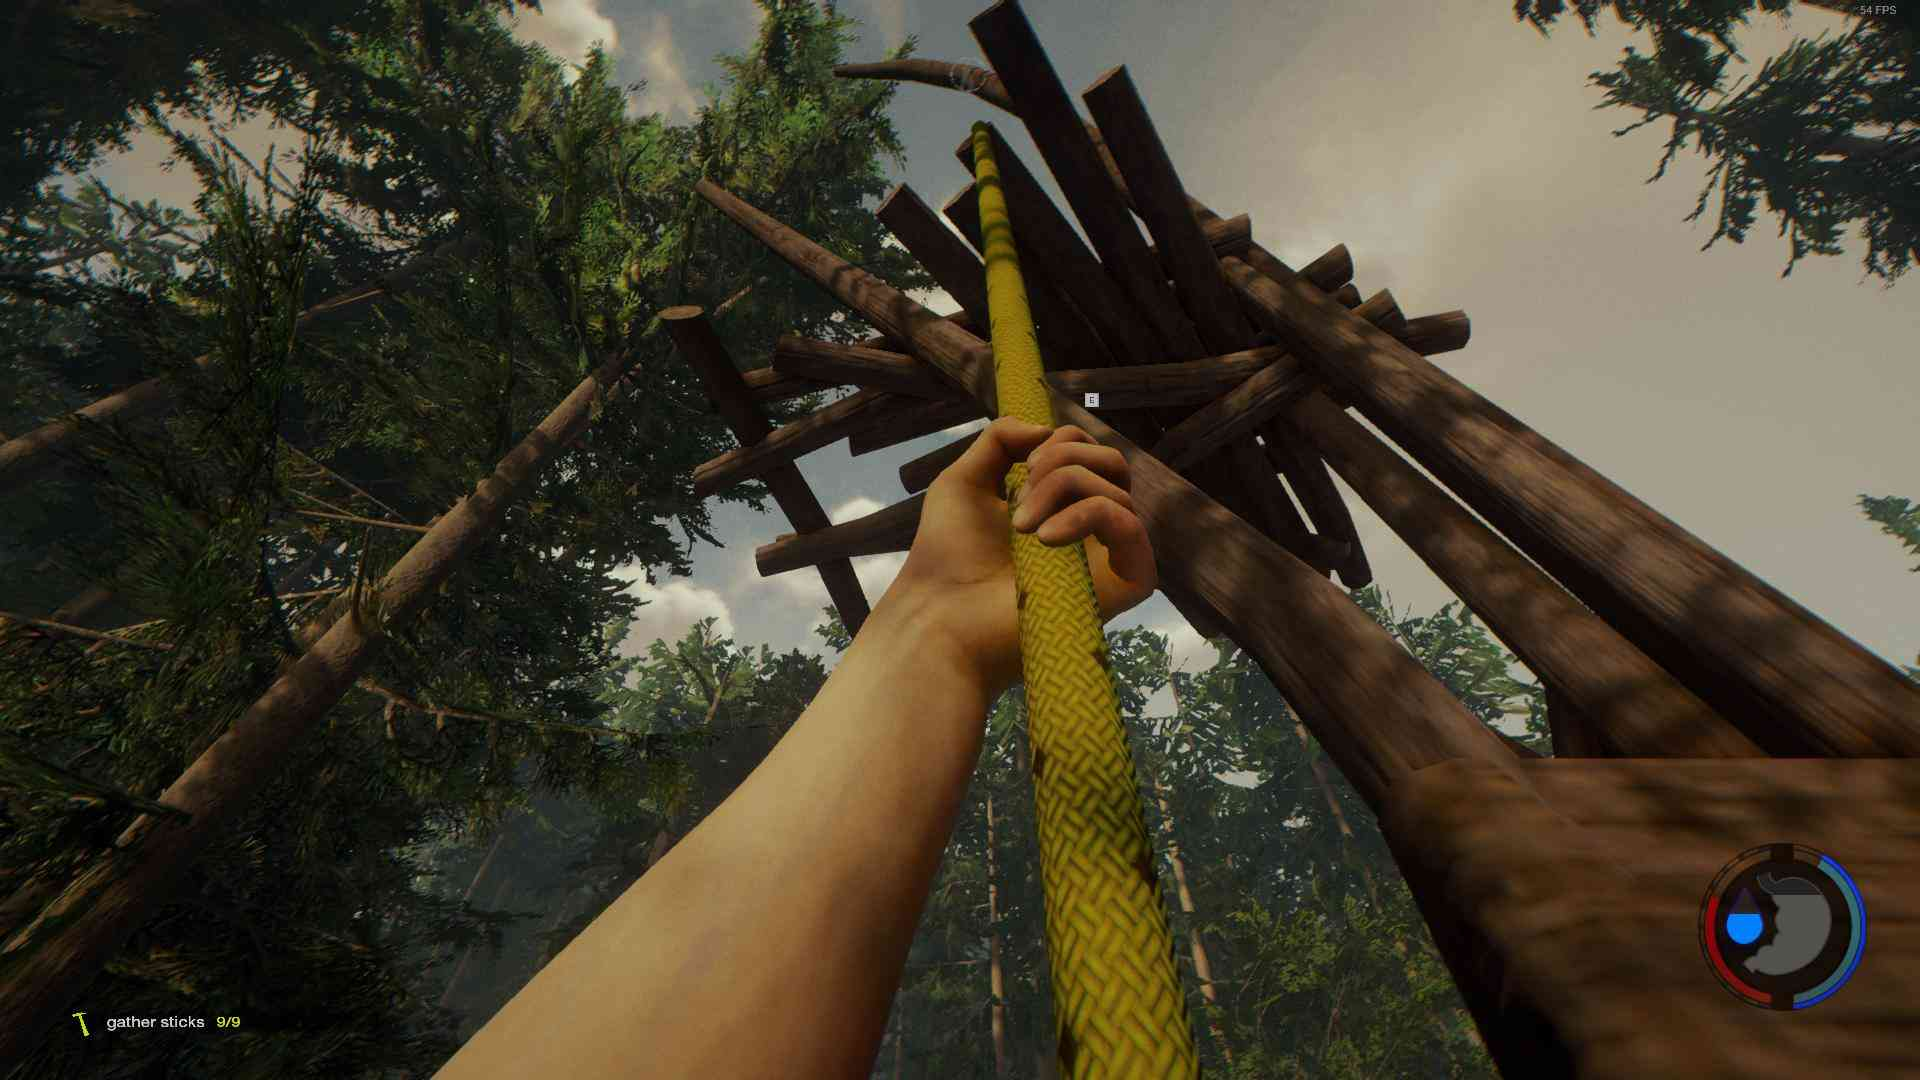 The Forest V0.45